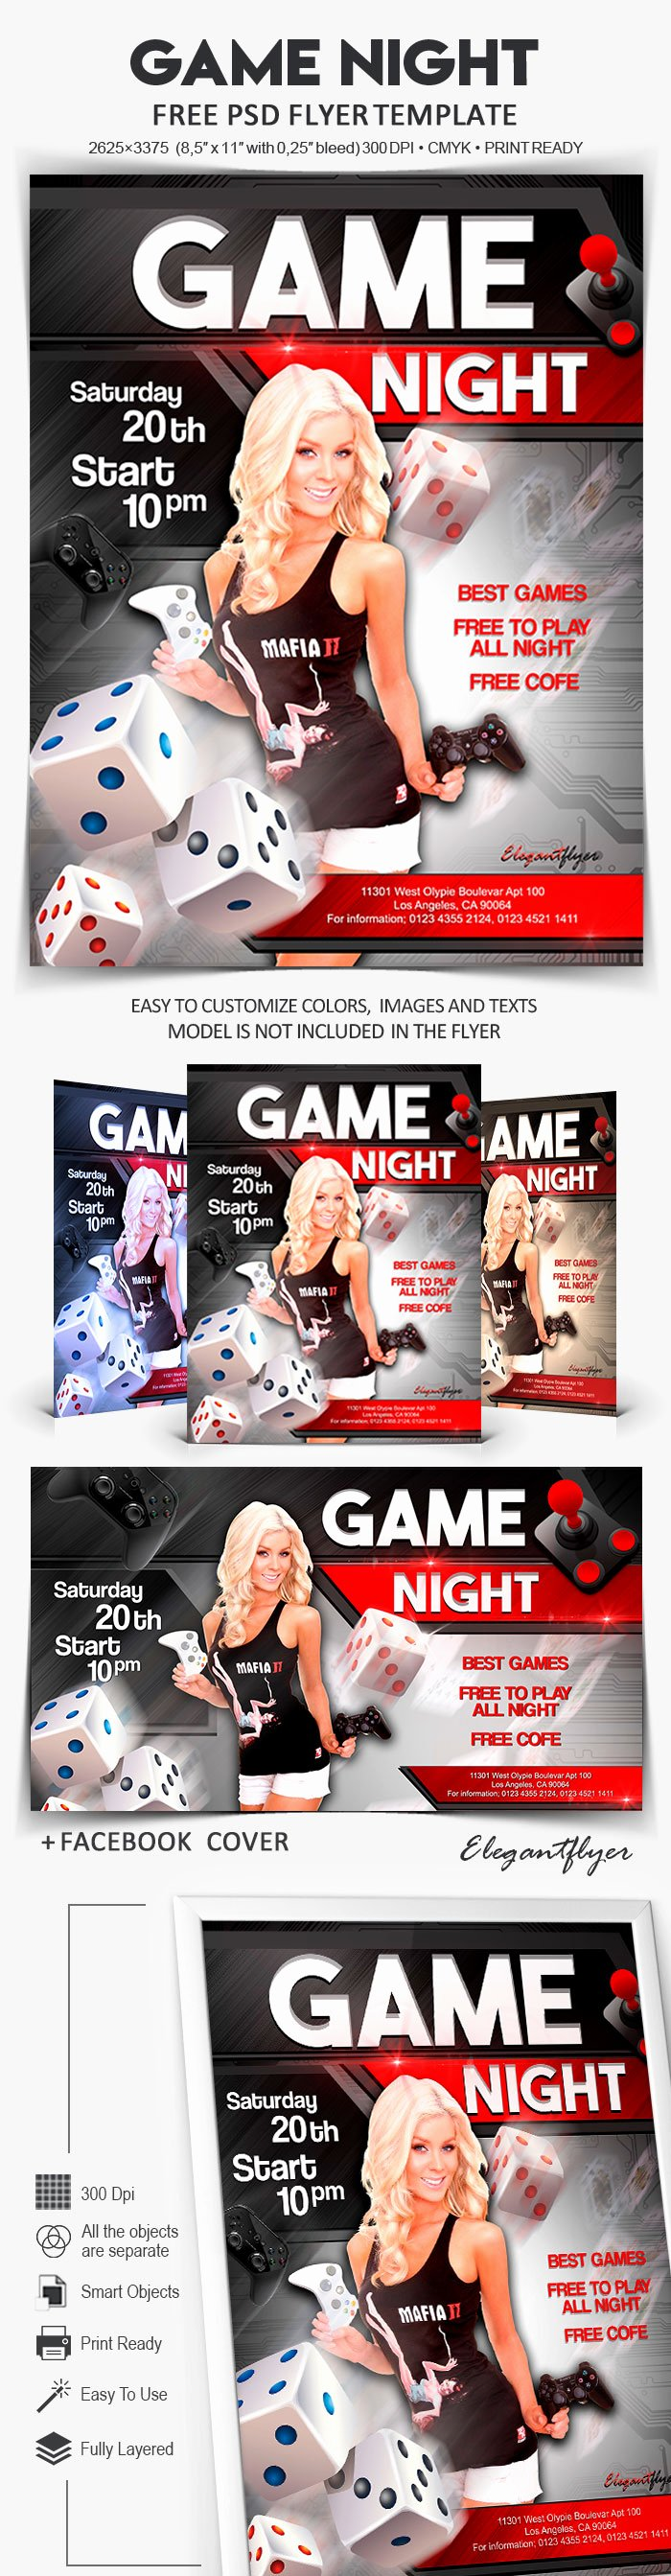 Game Night Flyer Template Awesome Game Night – Free Flyer Psd Template – by Elegantflyer